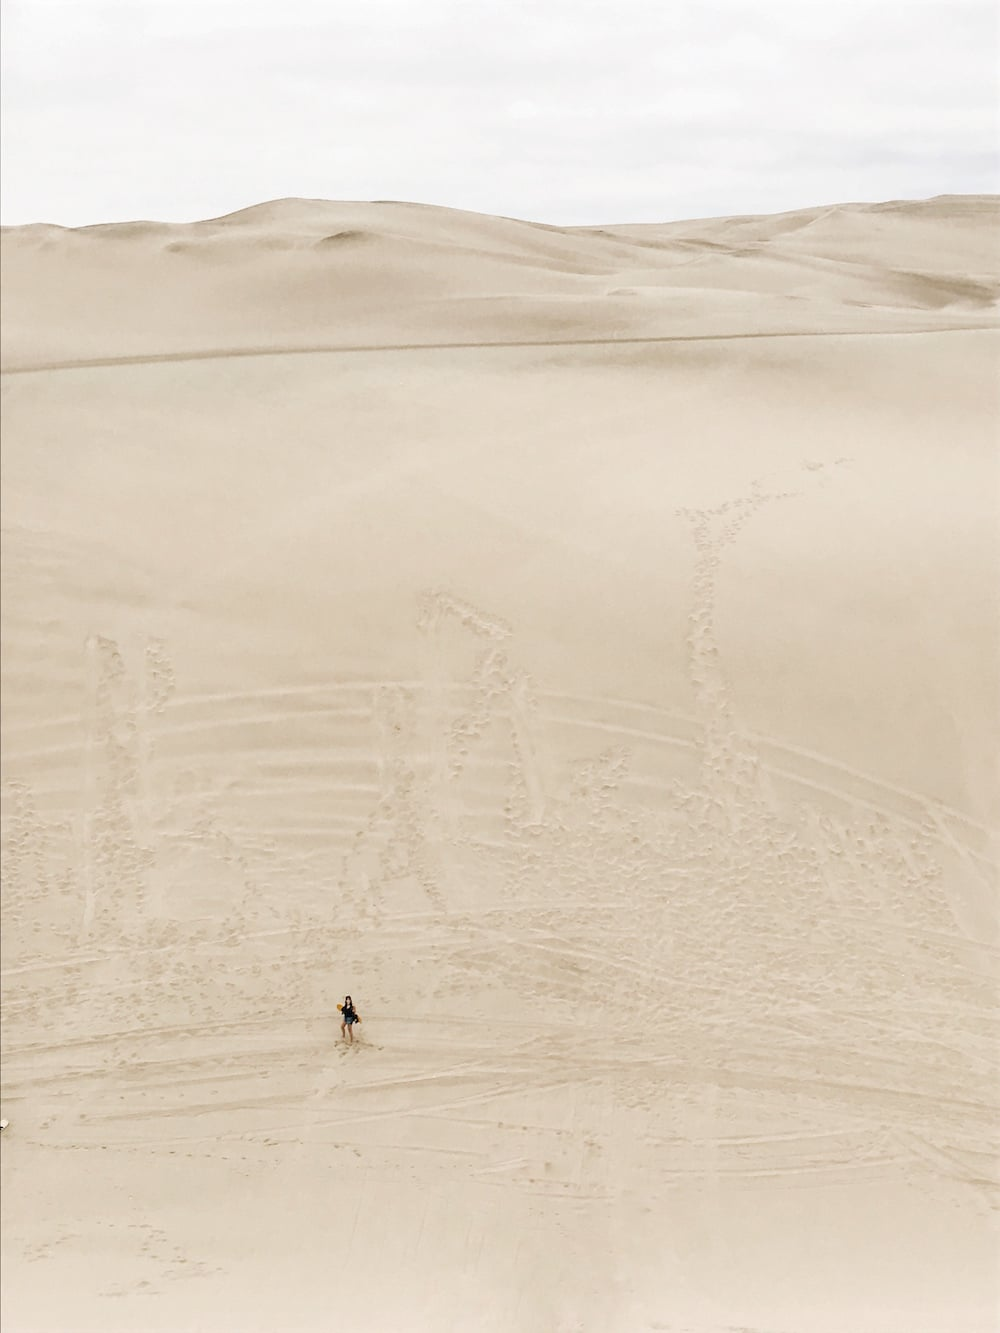 Sand Boarding in Huacachina